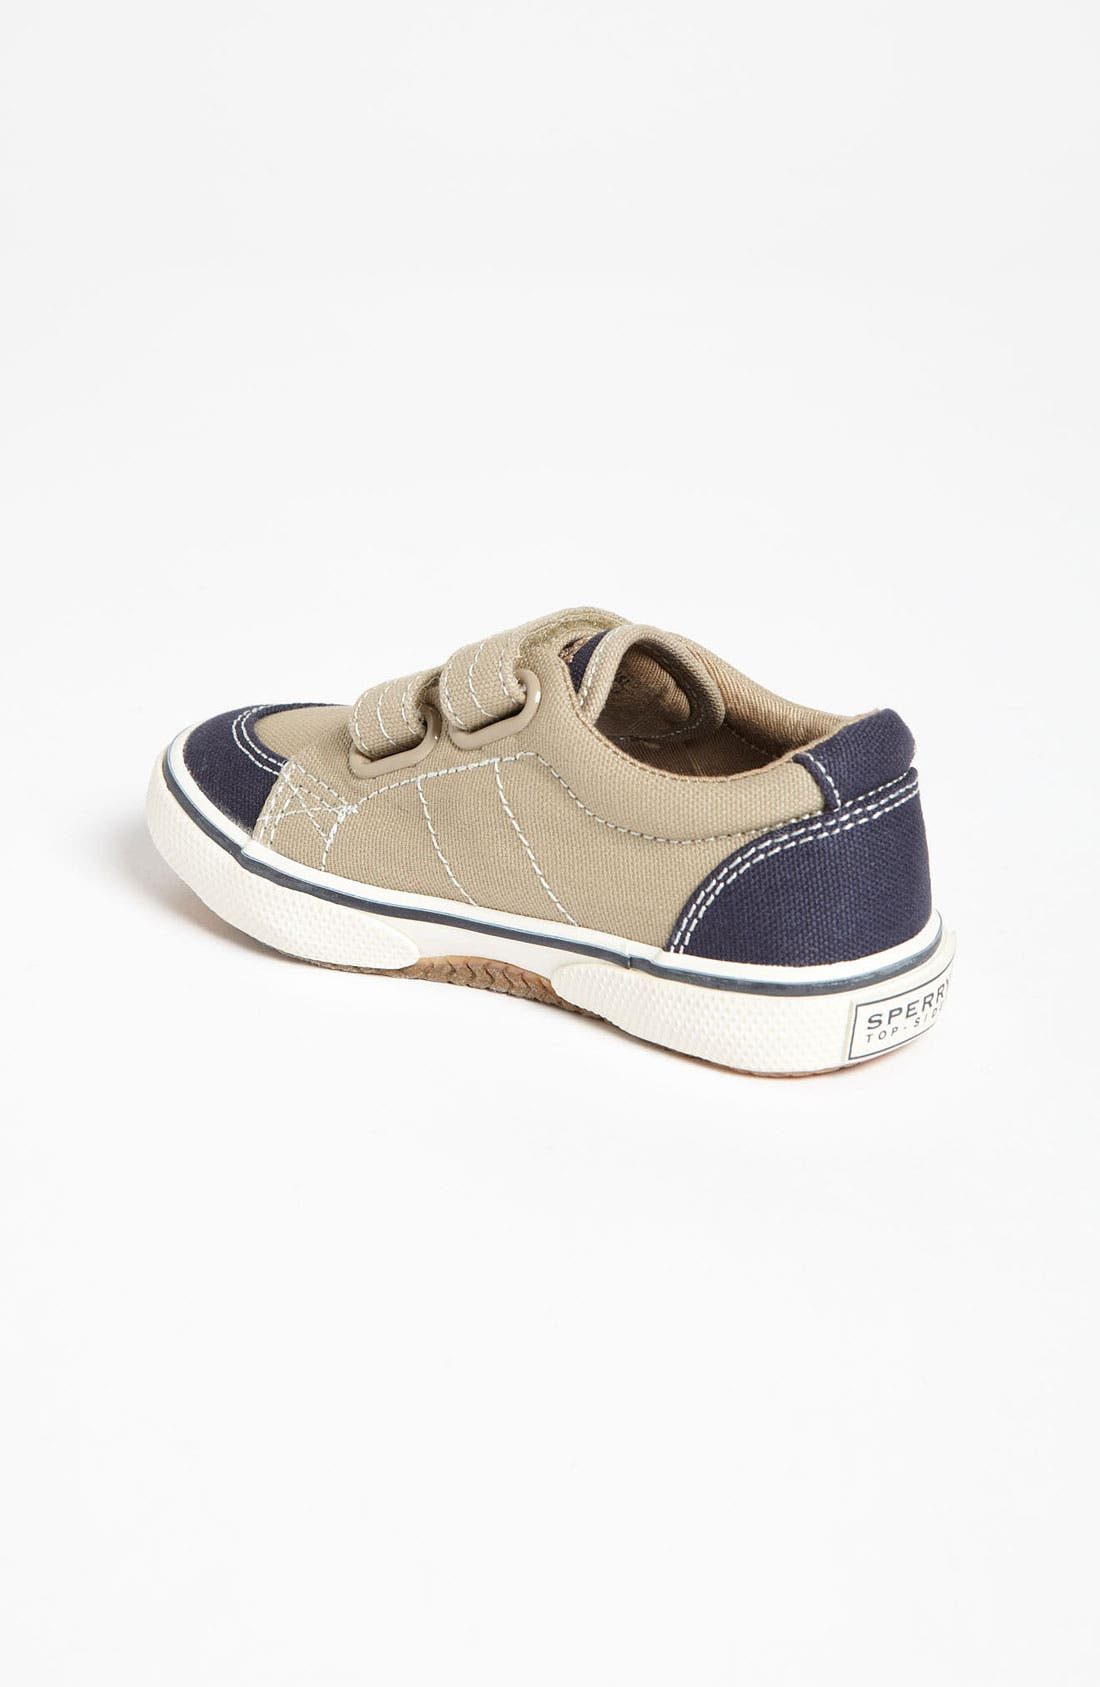 Sperry Top-Sider<sup>®</sup> Kids 'Halyard' Sneaker,                             Alternate thumbnail 19, color,